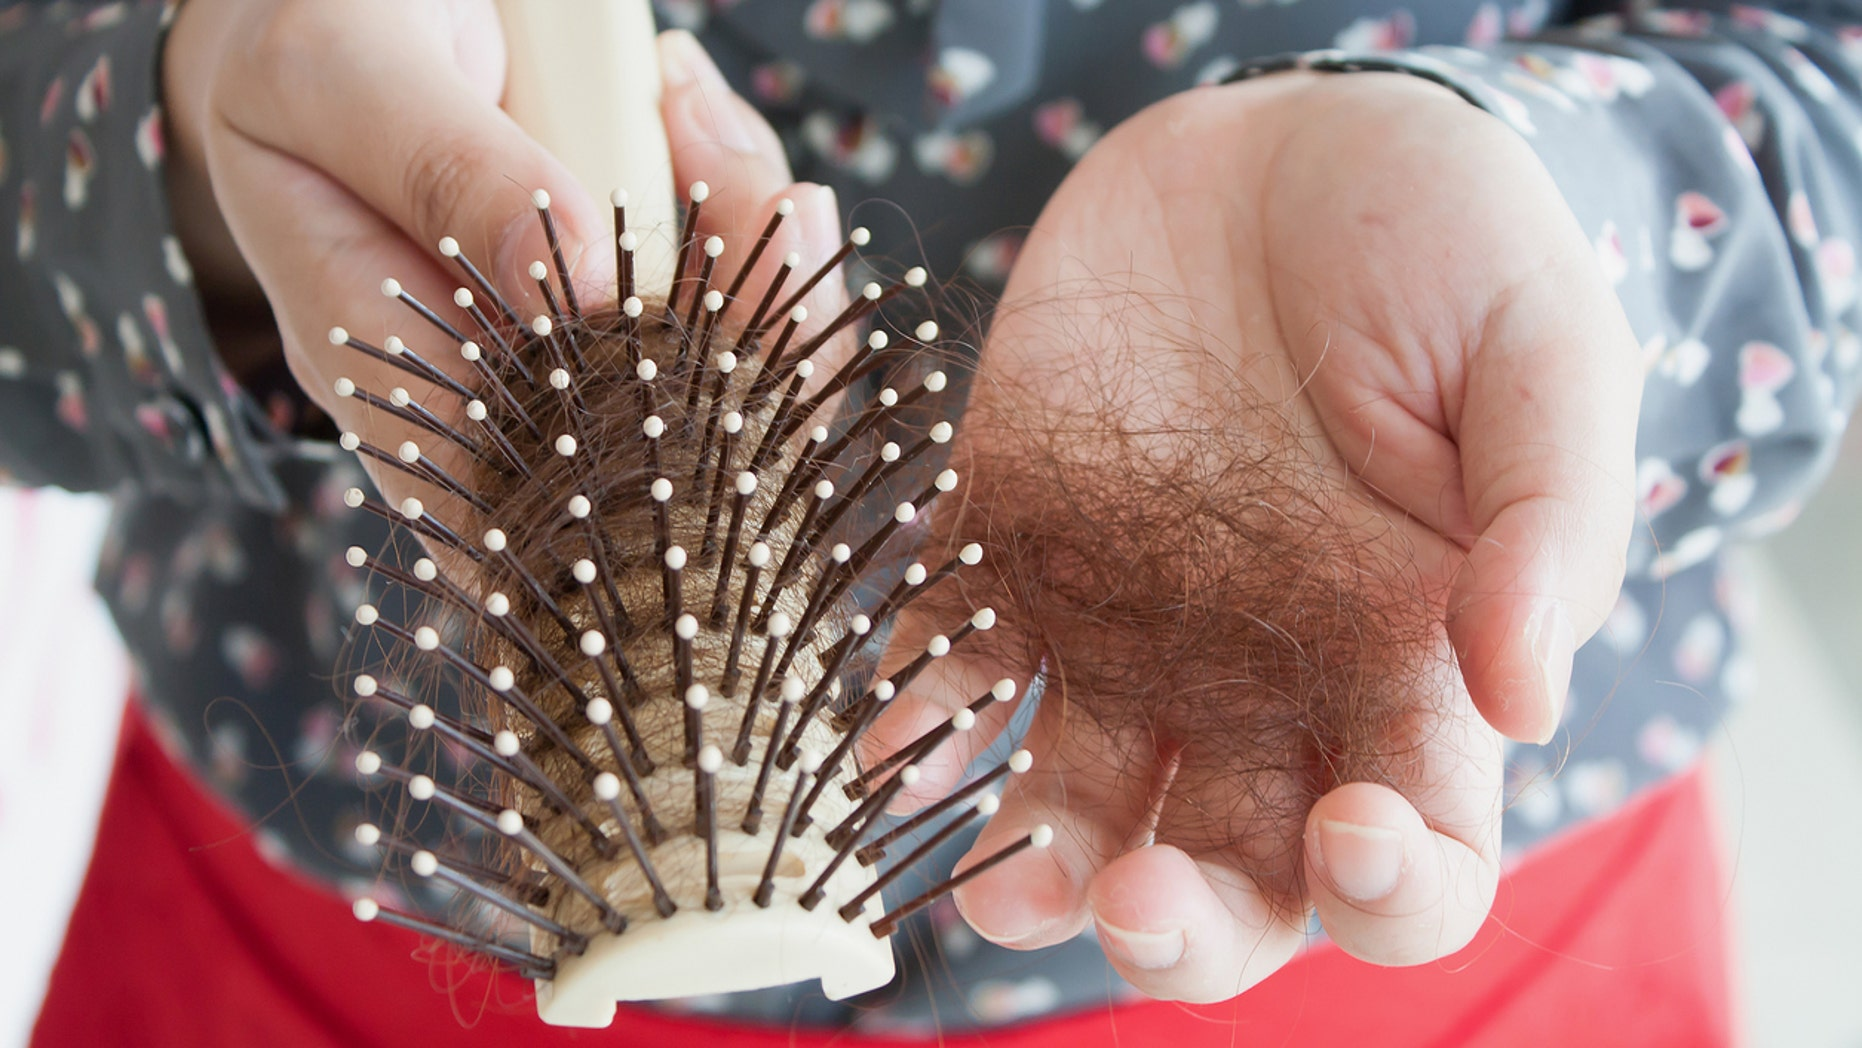 Hair loss, hand holding hairbrush with lost hair